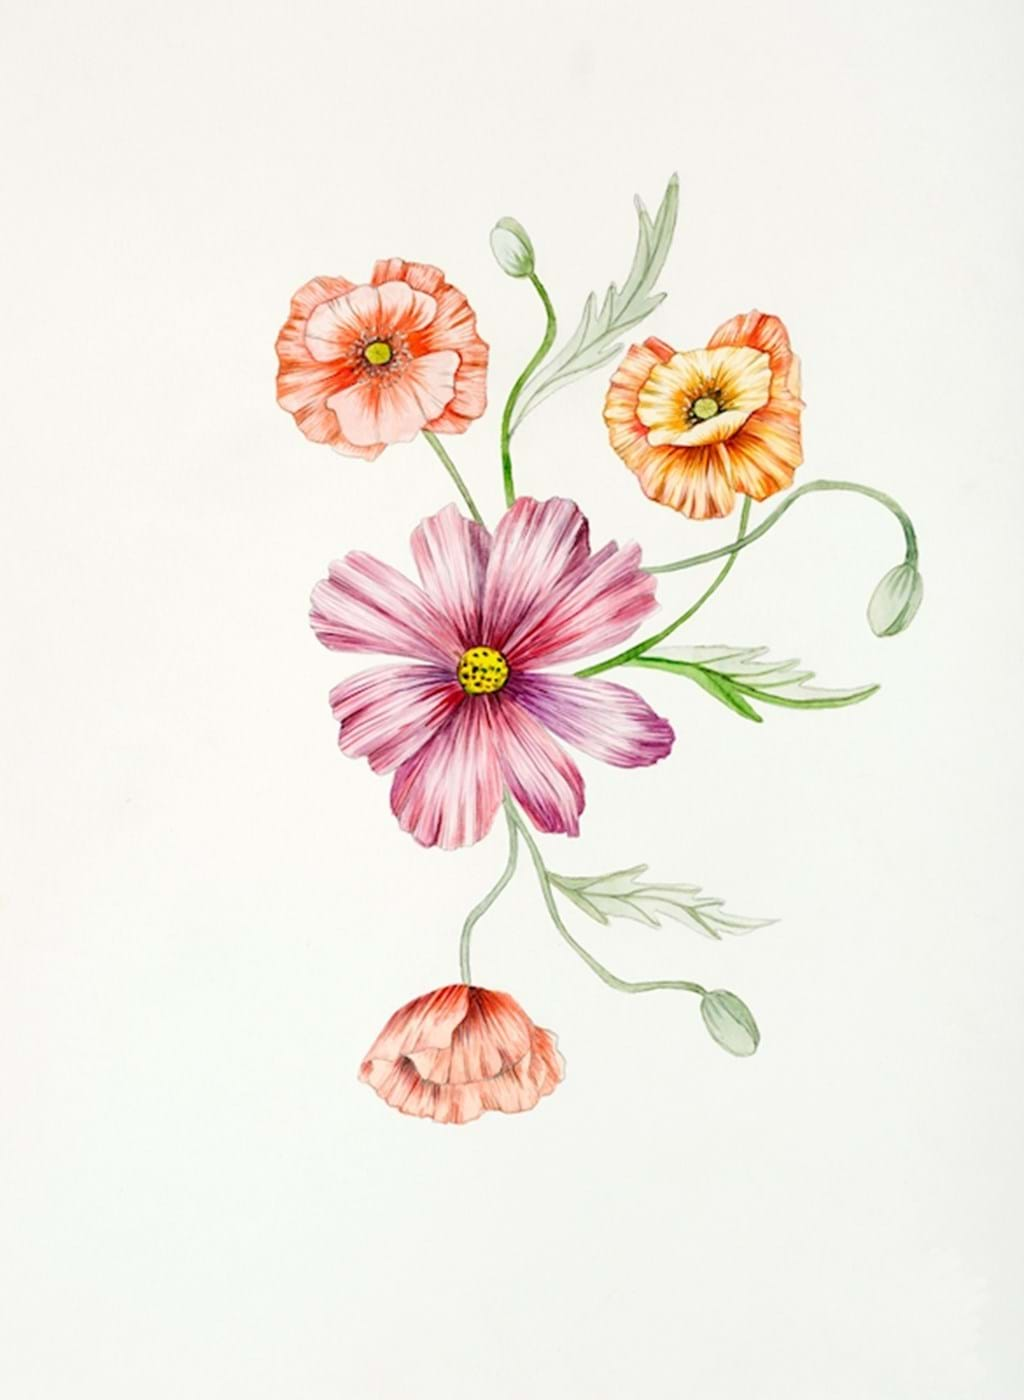 Poster: PAPAVER AND COSMEA - Artistic